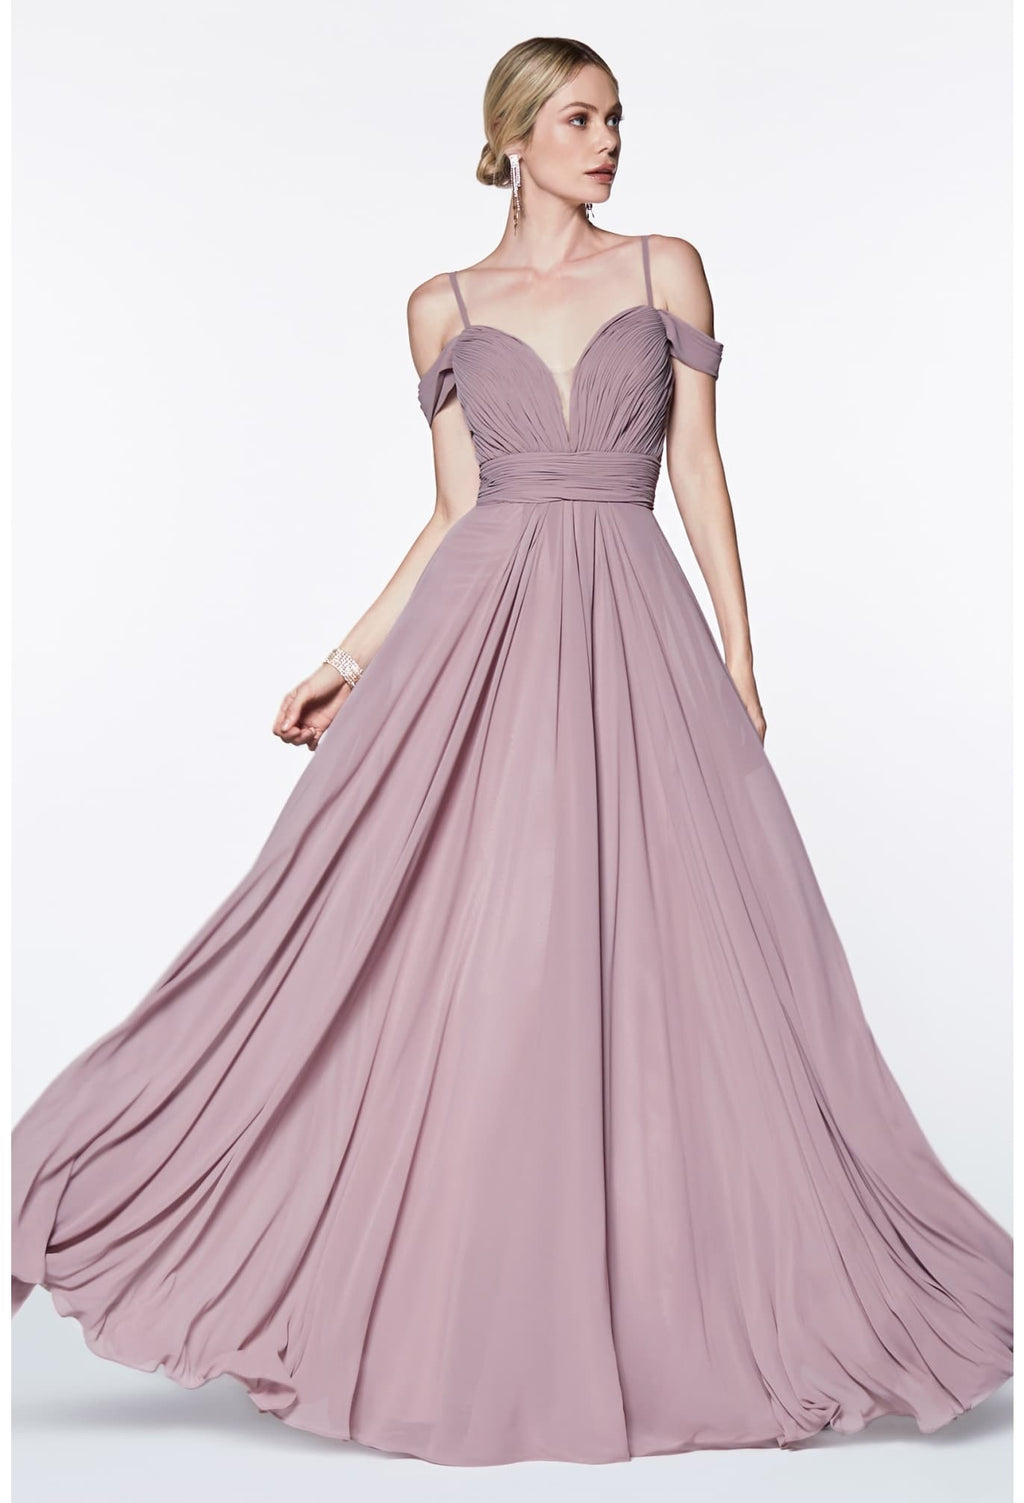 A-line chiffon gown with off the shoulder sleeve and sweetheart neckline